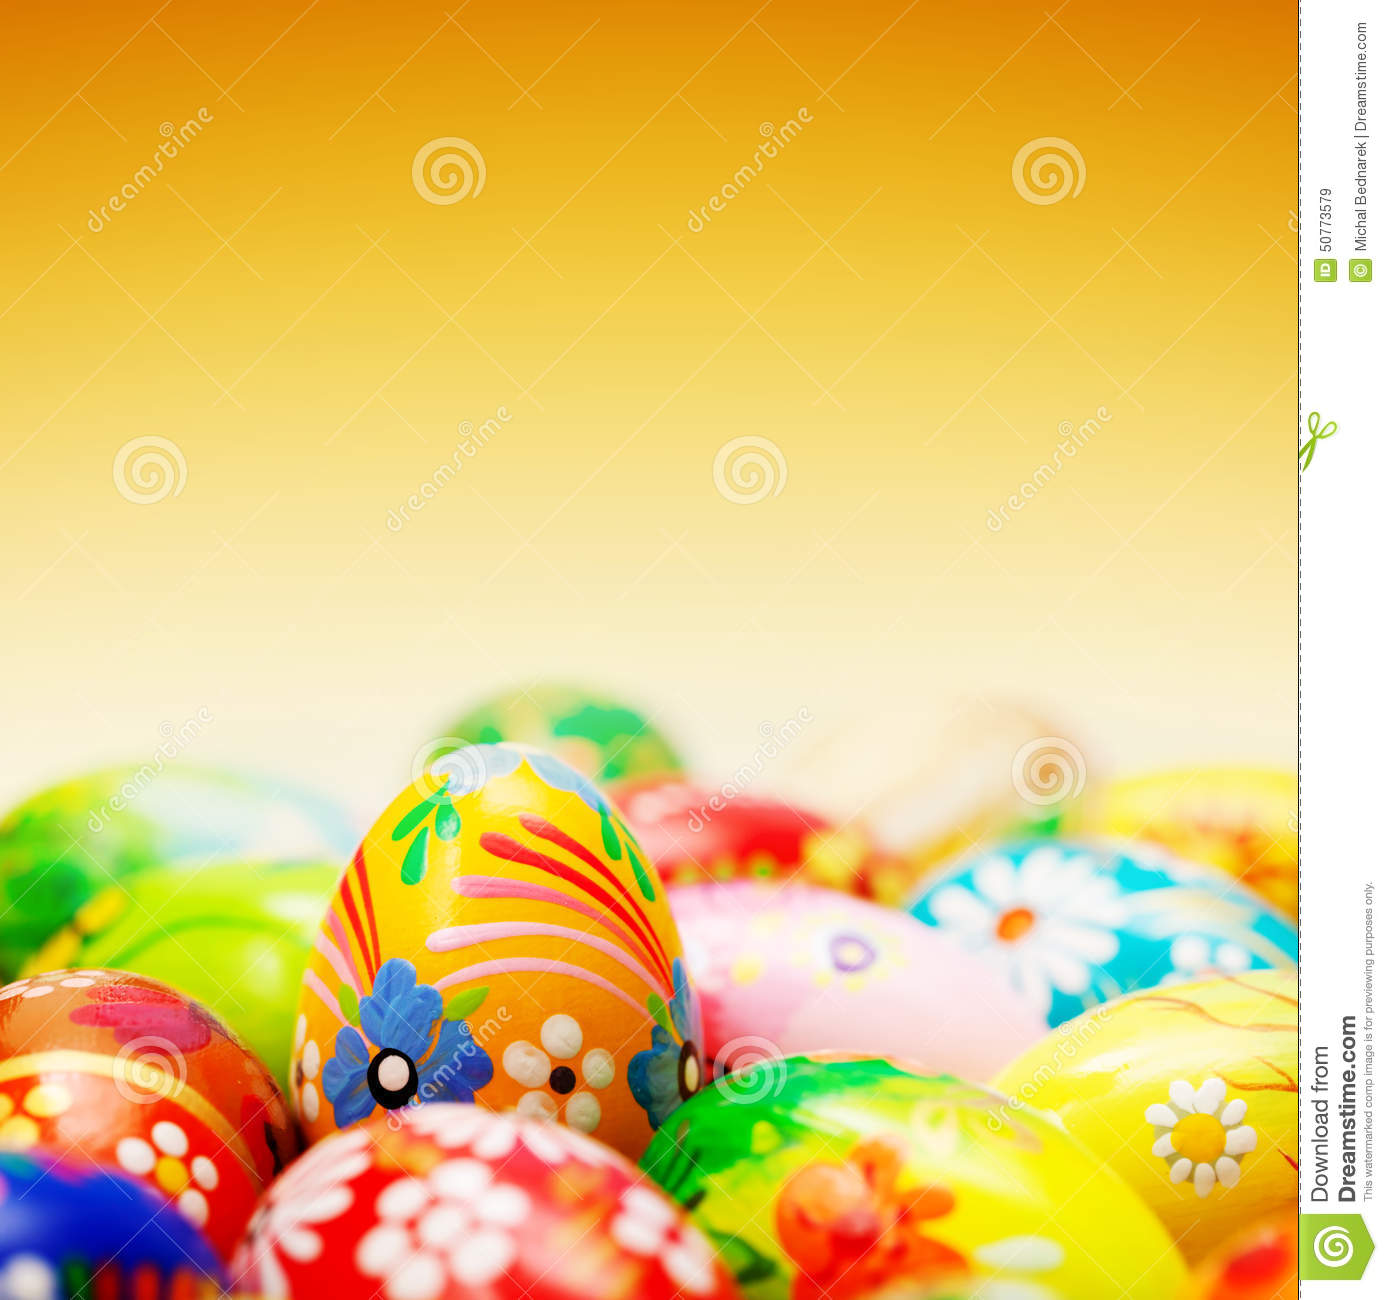 Handmade Easter eggs on yellow background. Spring patterns